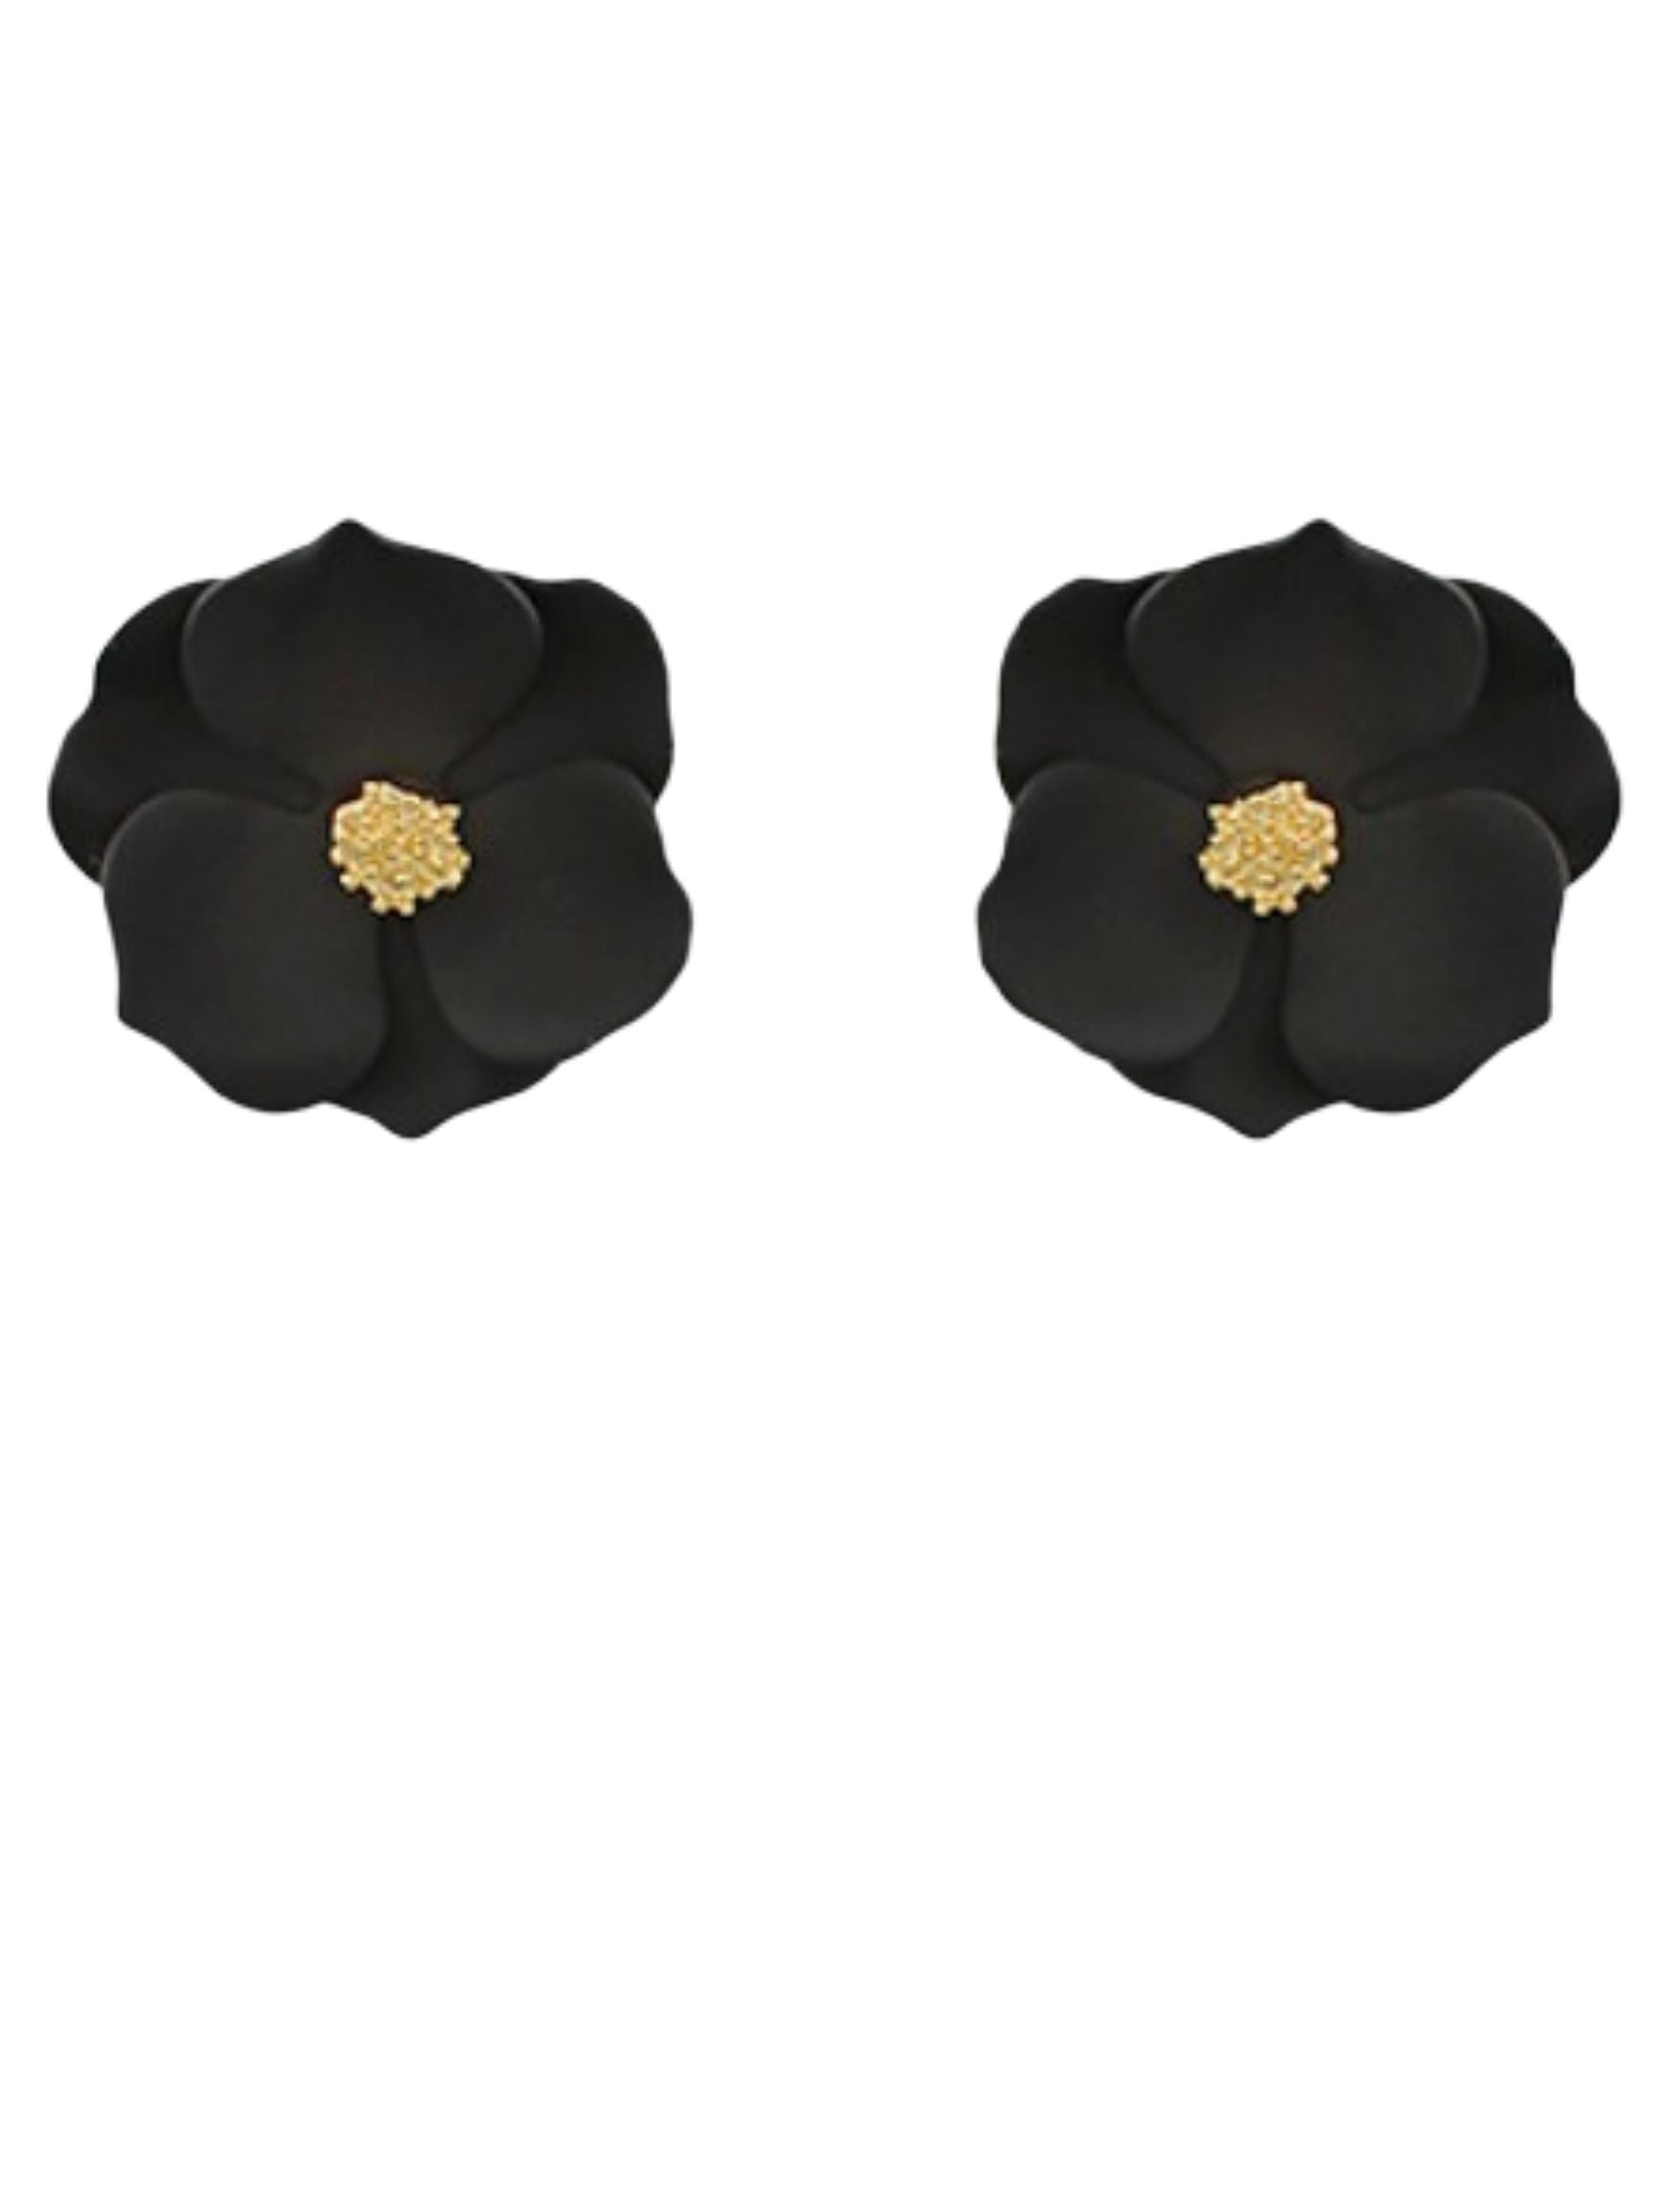 Buttercup Stud in Black